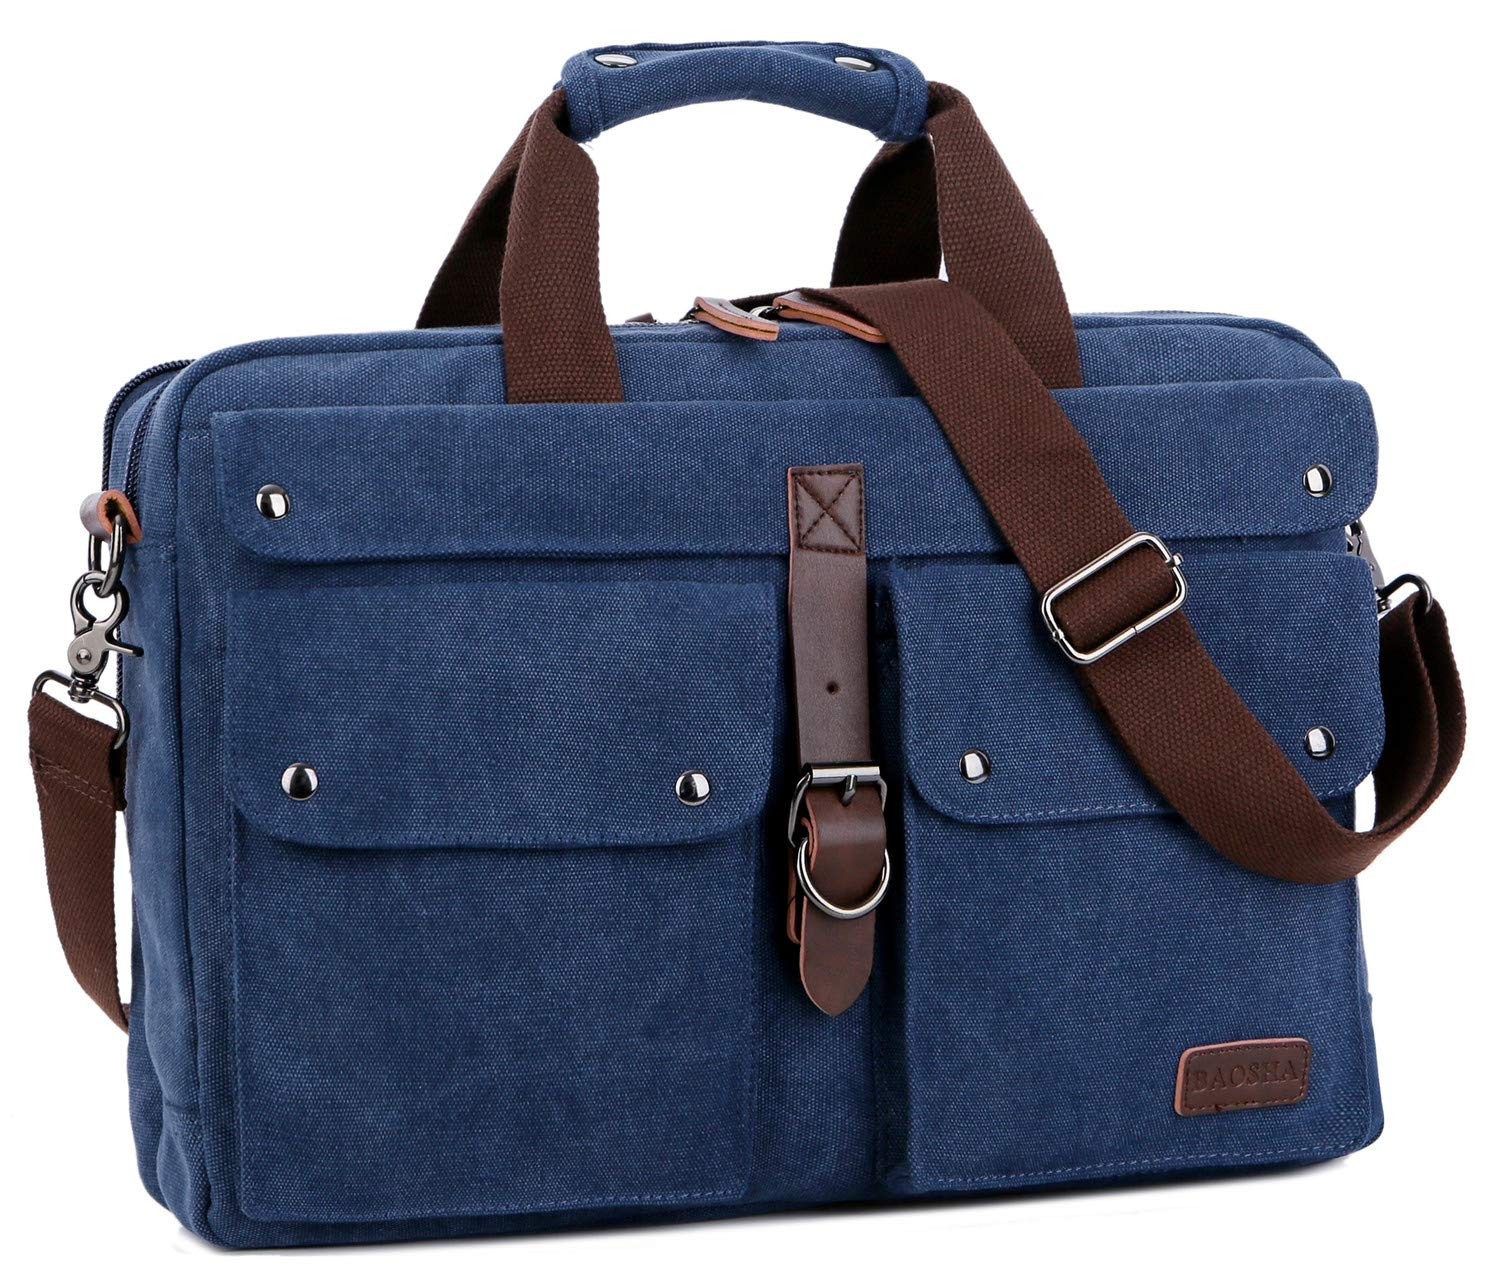 BAOSHA BC-07 17inch Canvas Laptop Computer Bag Messenger Bag Multicompartment Briefcase (Blue)